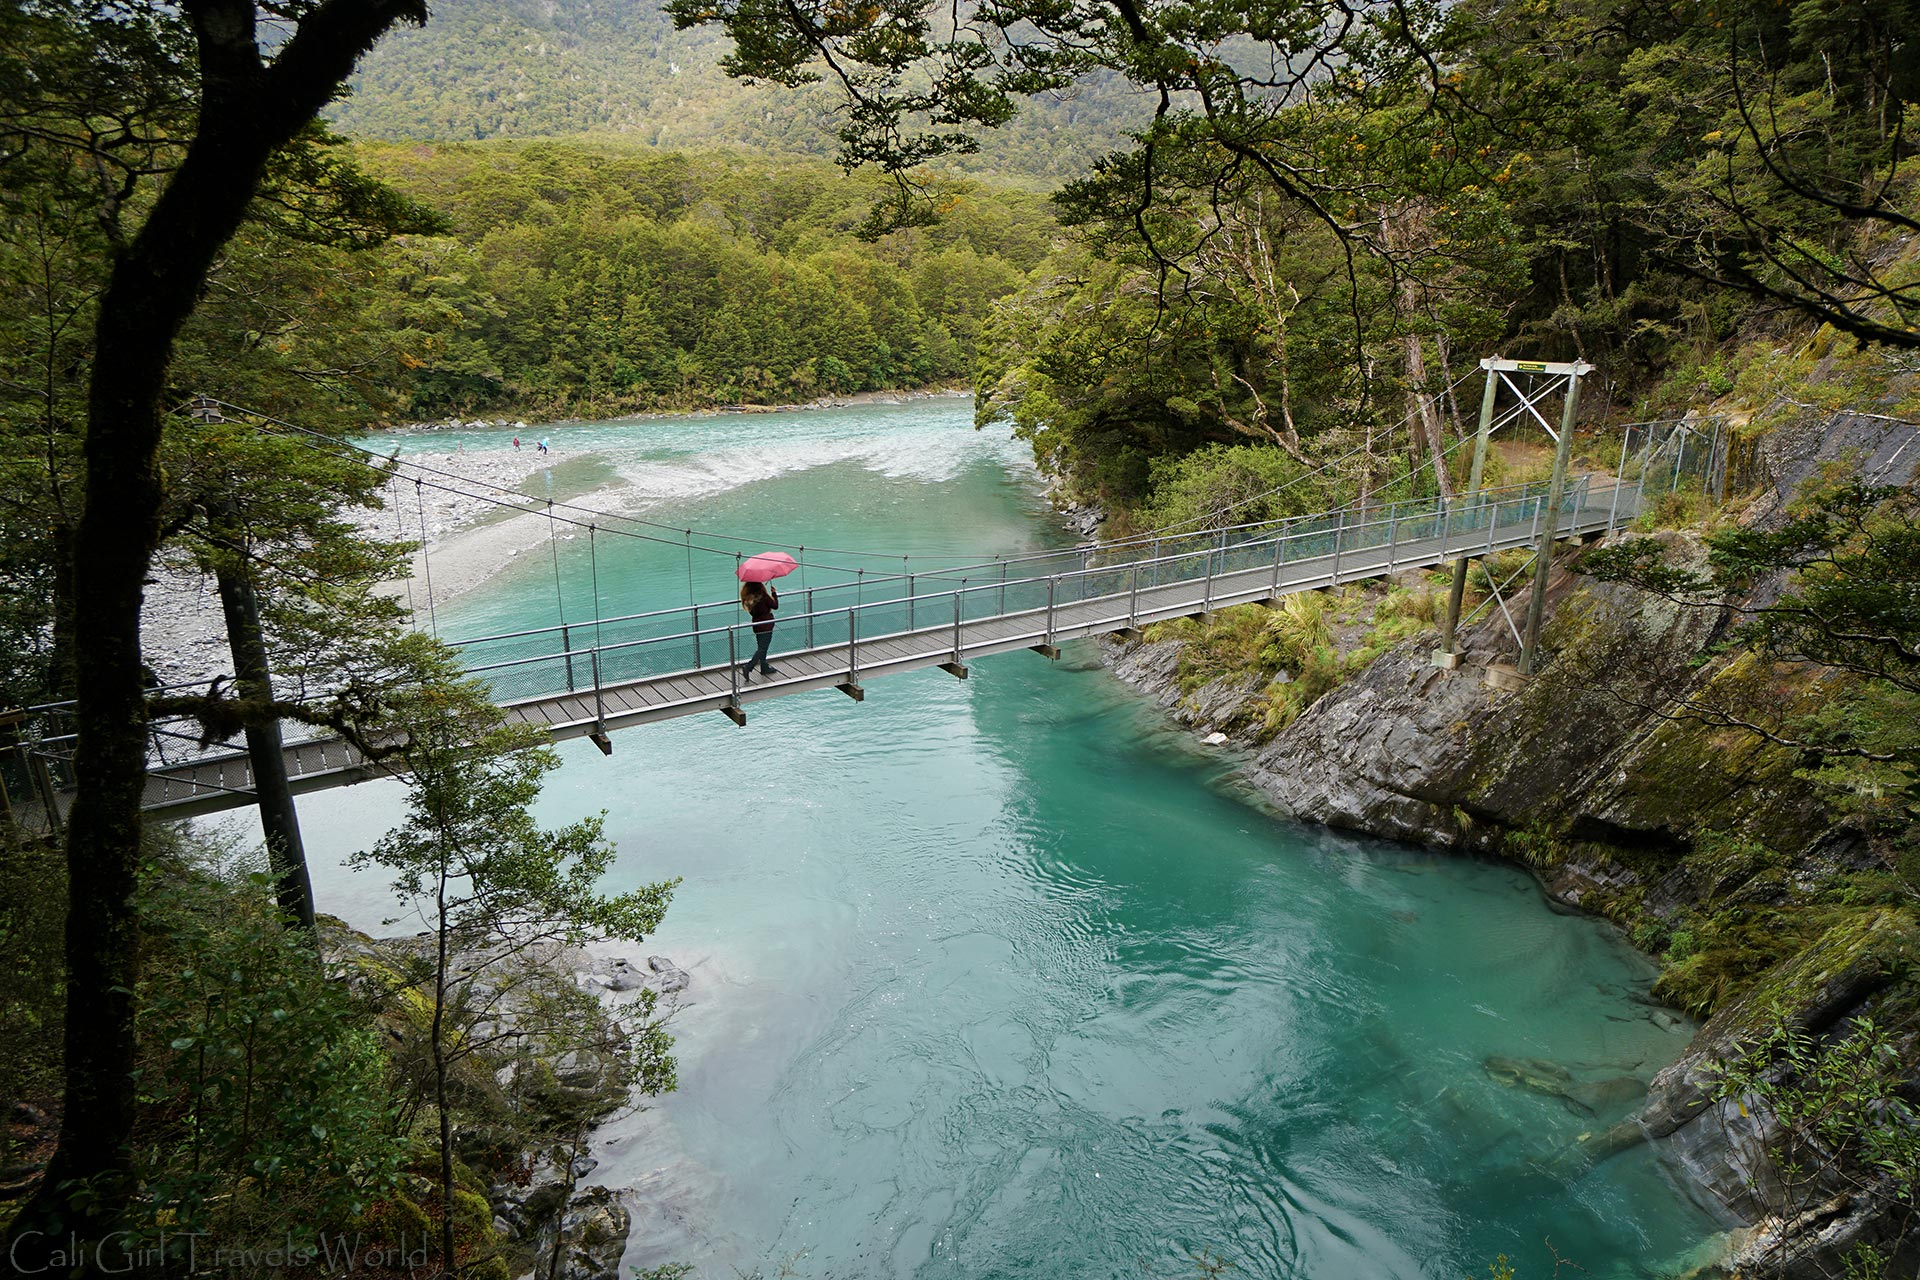 A female travel blogger walking over a suspension bridge above the clear blue pools near Wanaka and Haast in New Zealand.